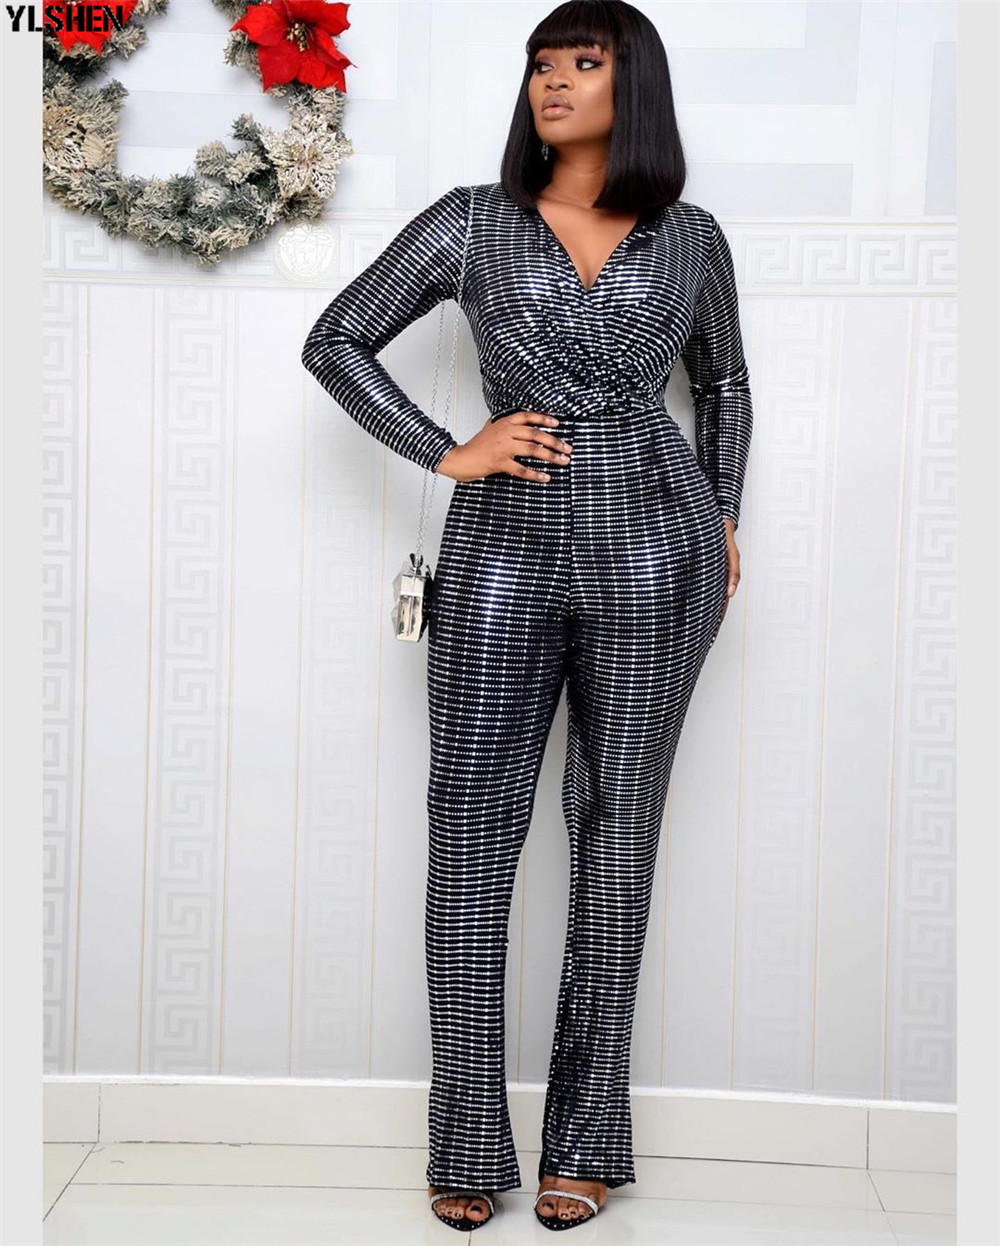 2020 Jumpsuit Africa Clothing African Dresses for Women Elastic Sequins Bodysuit Jumpsuits Overalls Plus Size African Clothes 02